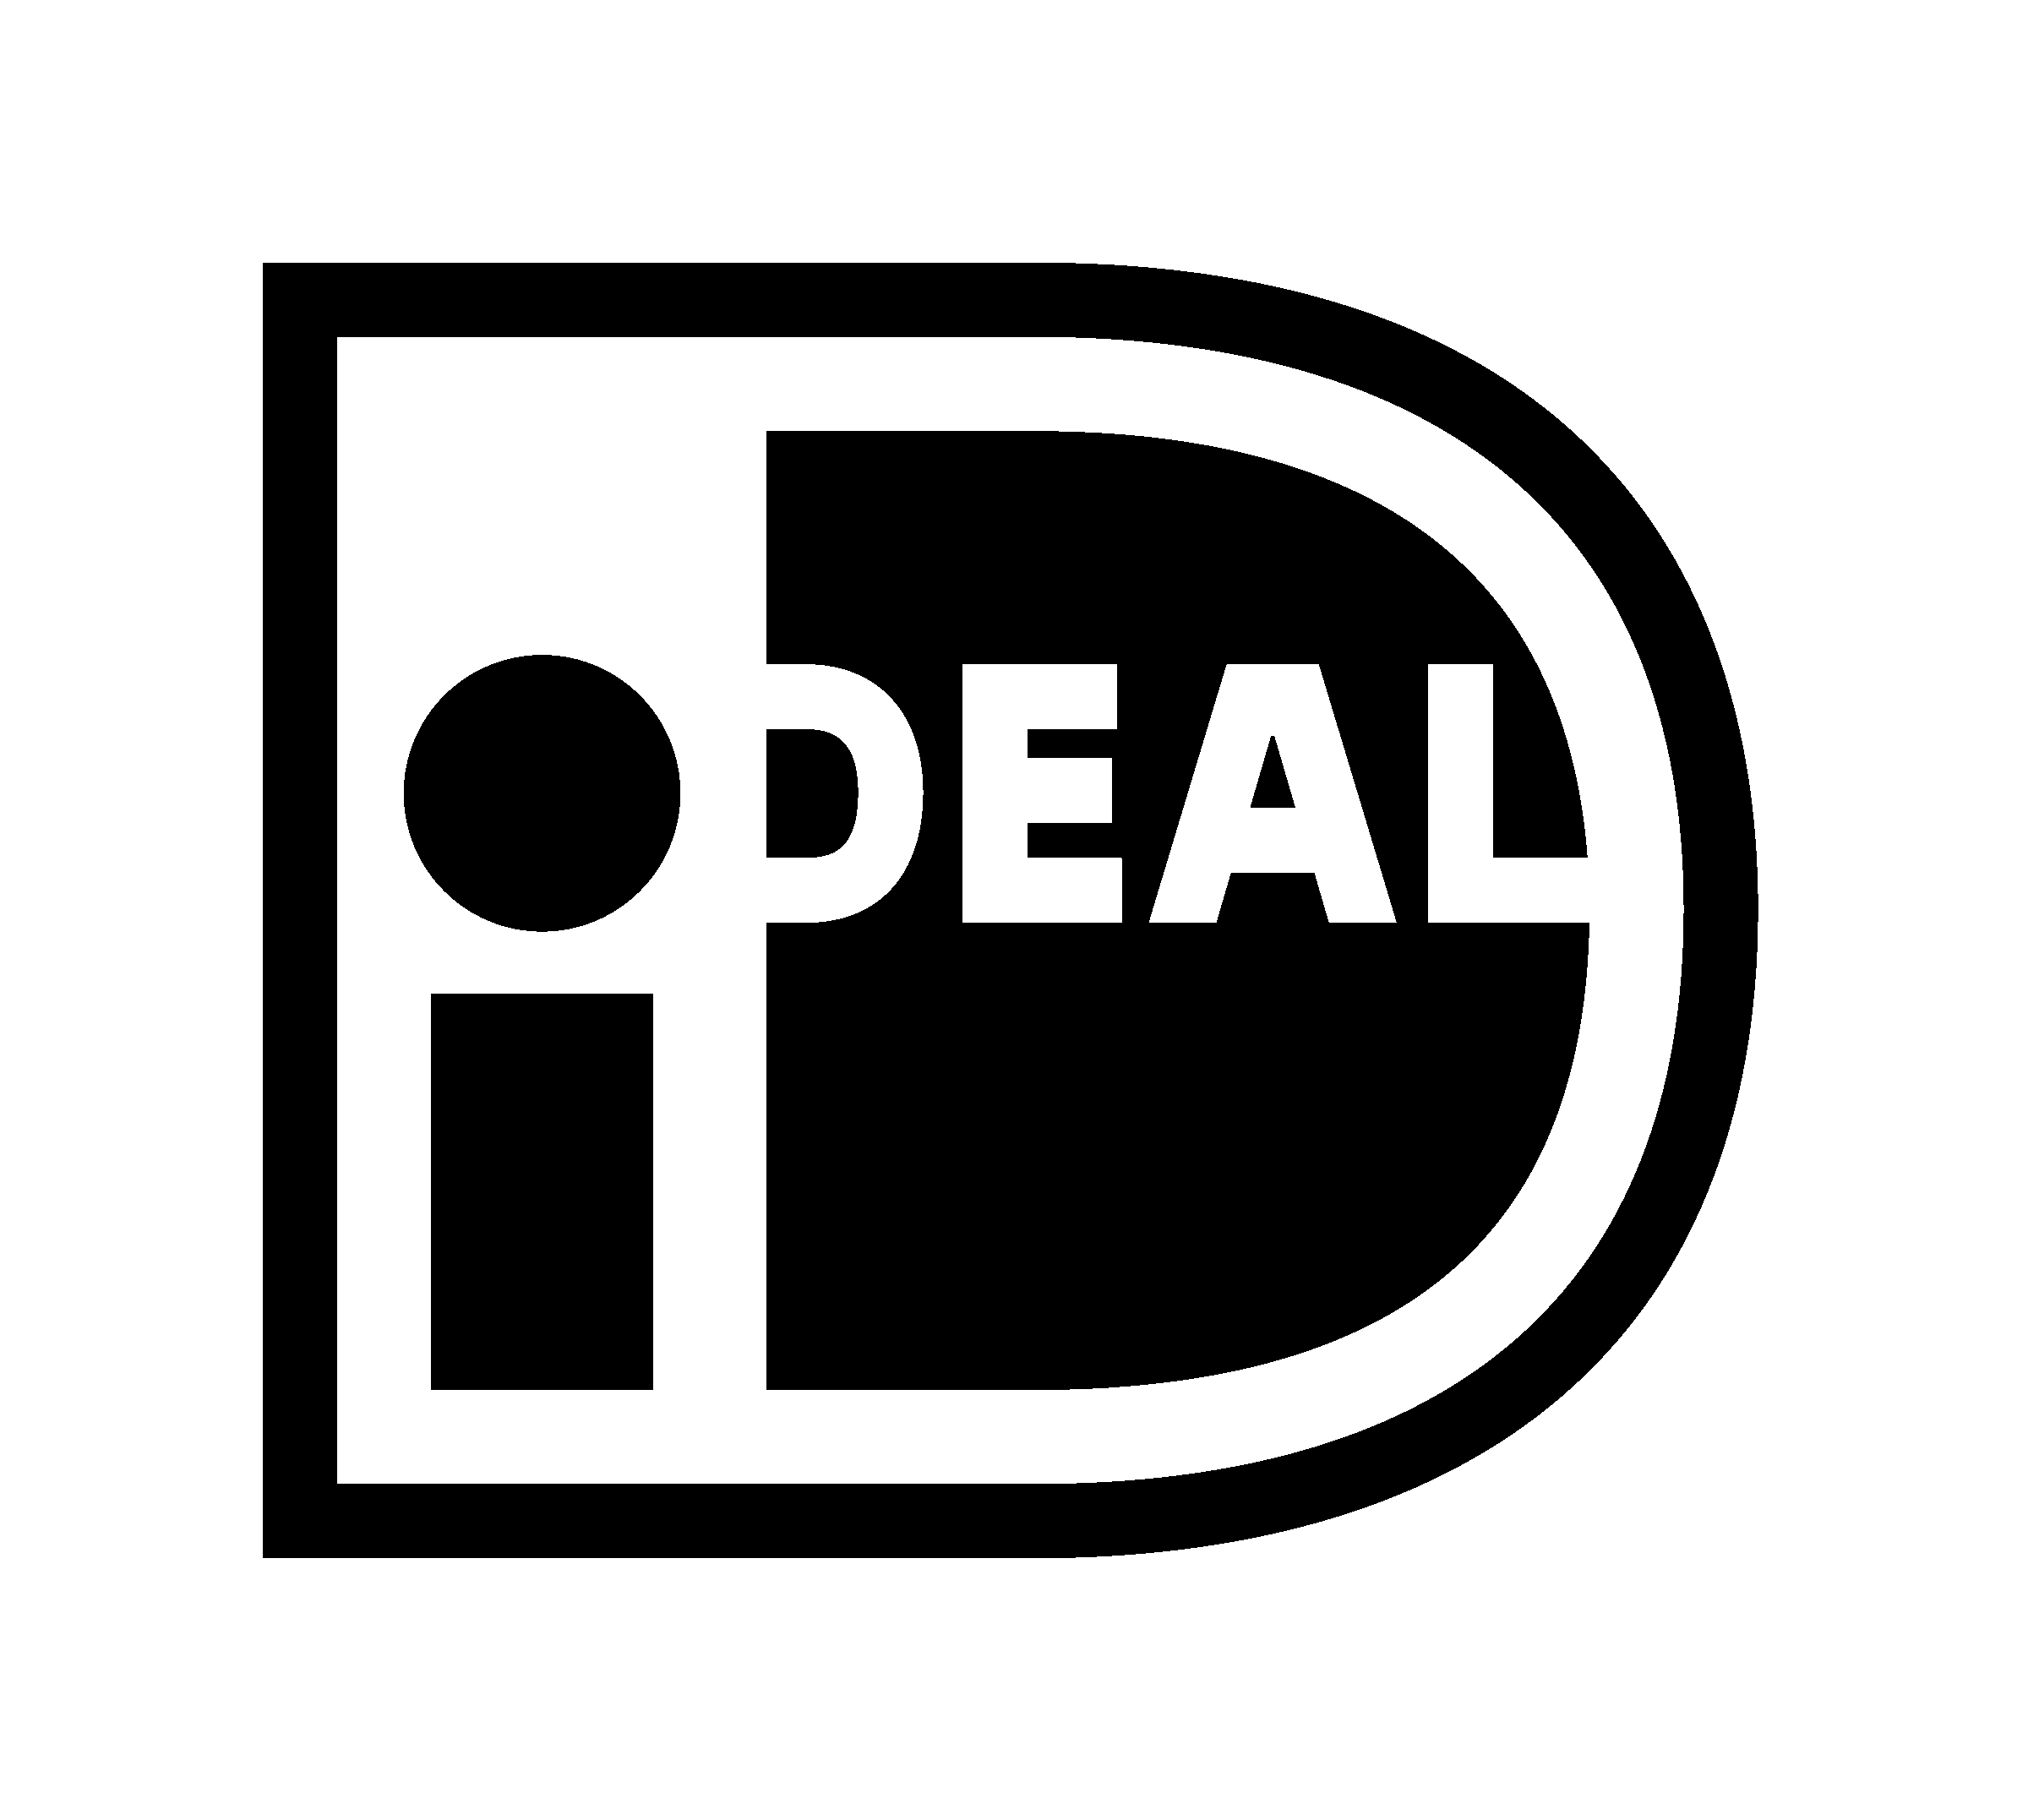 ideal-logo-black